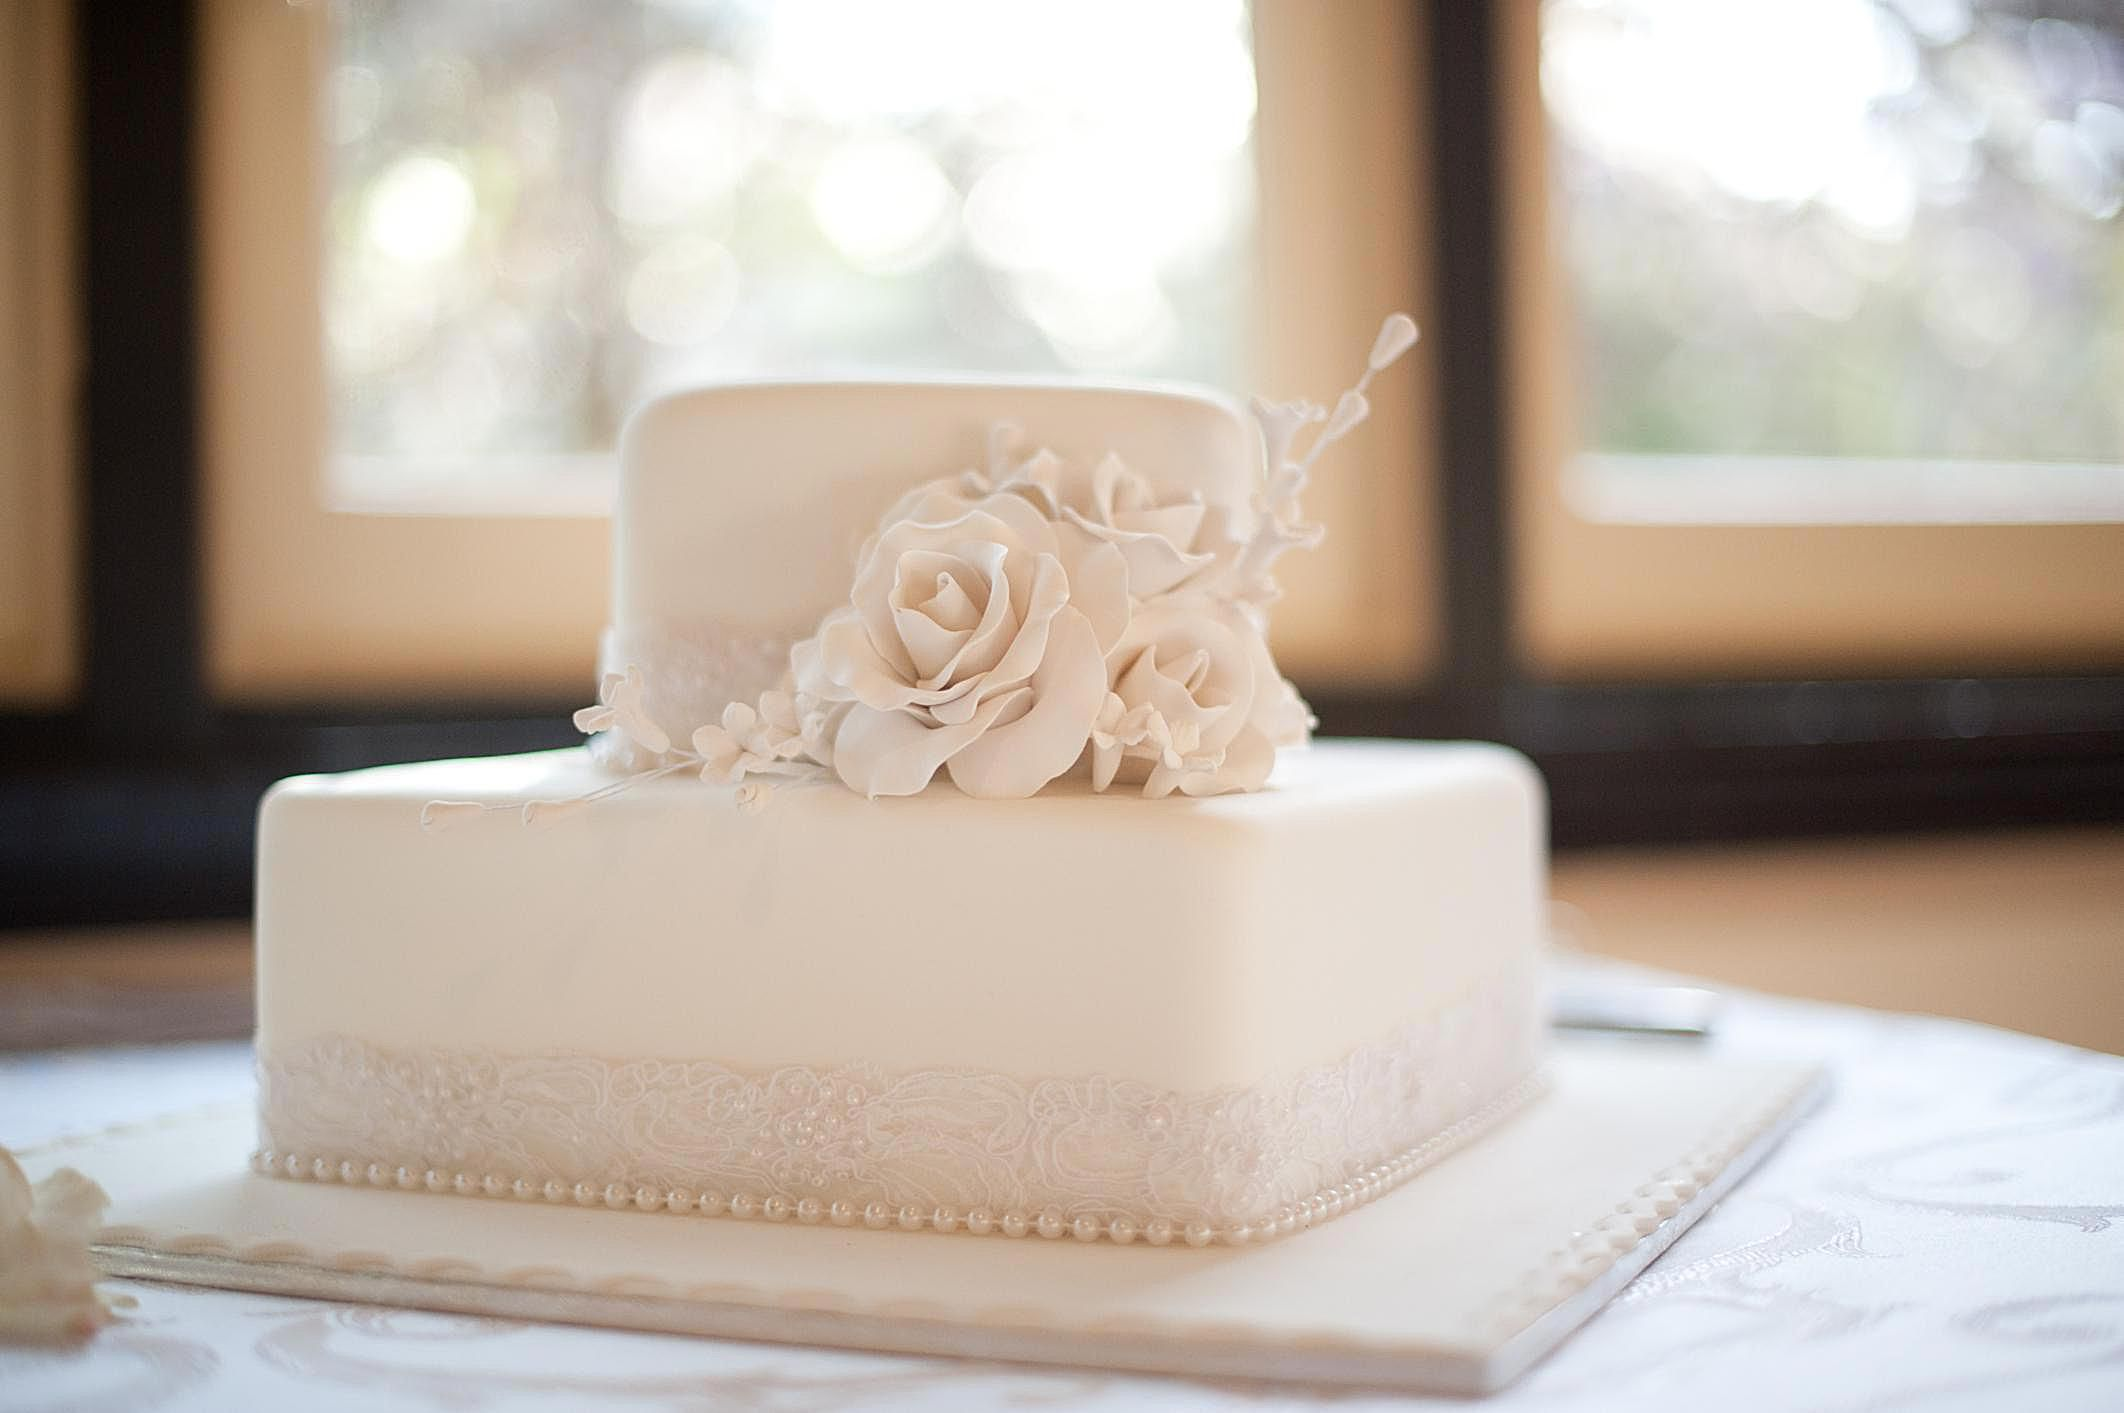 no fondant wedding cake pictures fondant possible problems and fix tips 17904